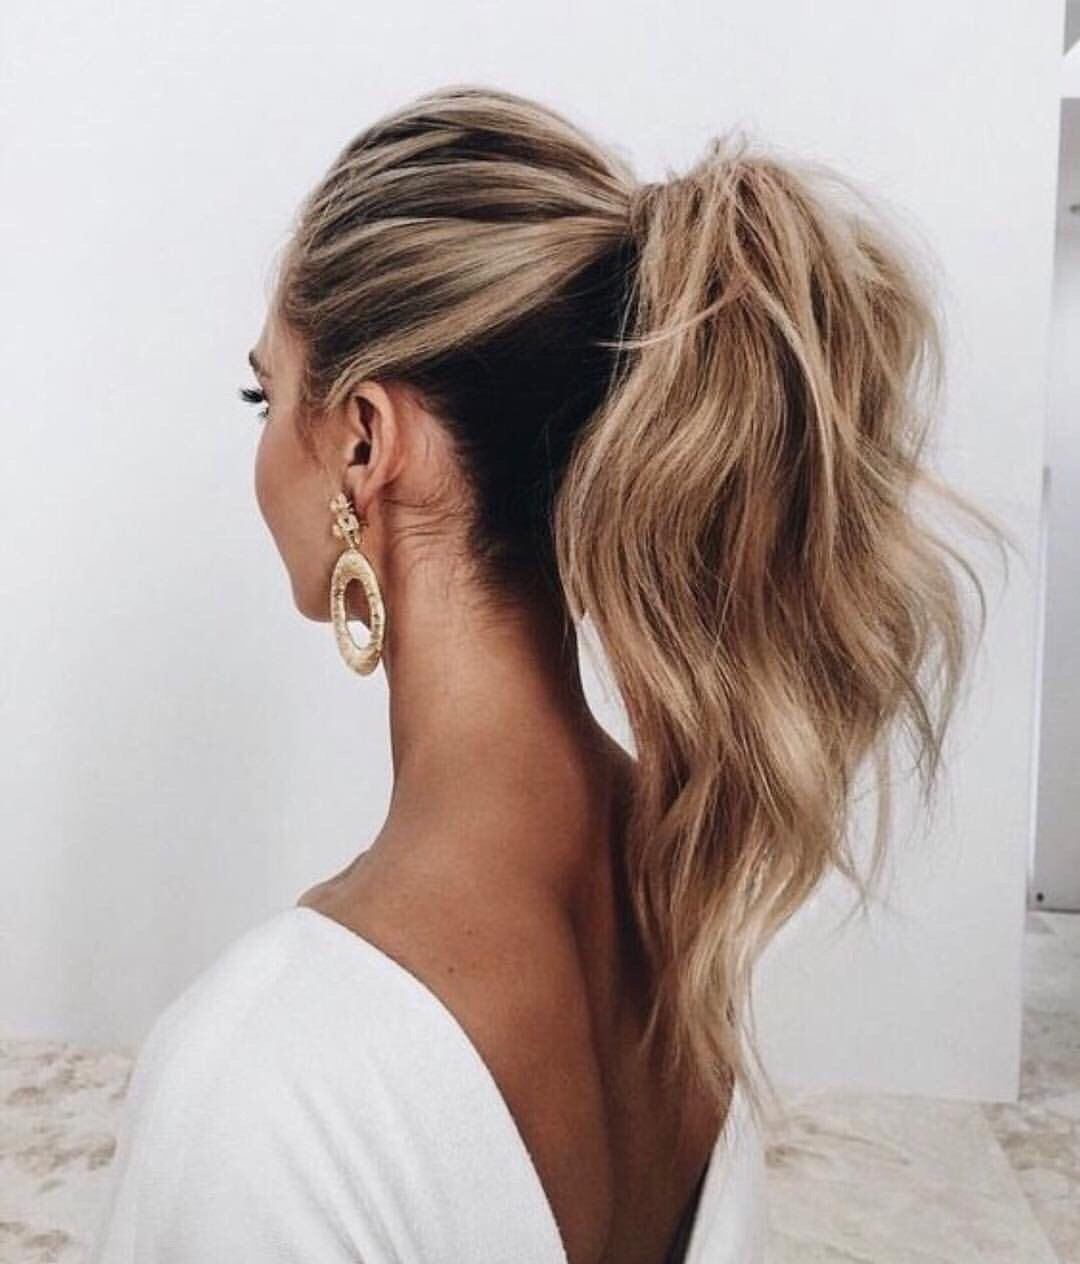 Classic Ponytail With Loose Curls Makeup Hair Styles Hair